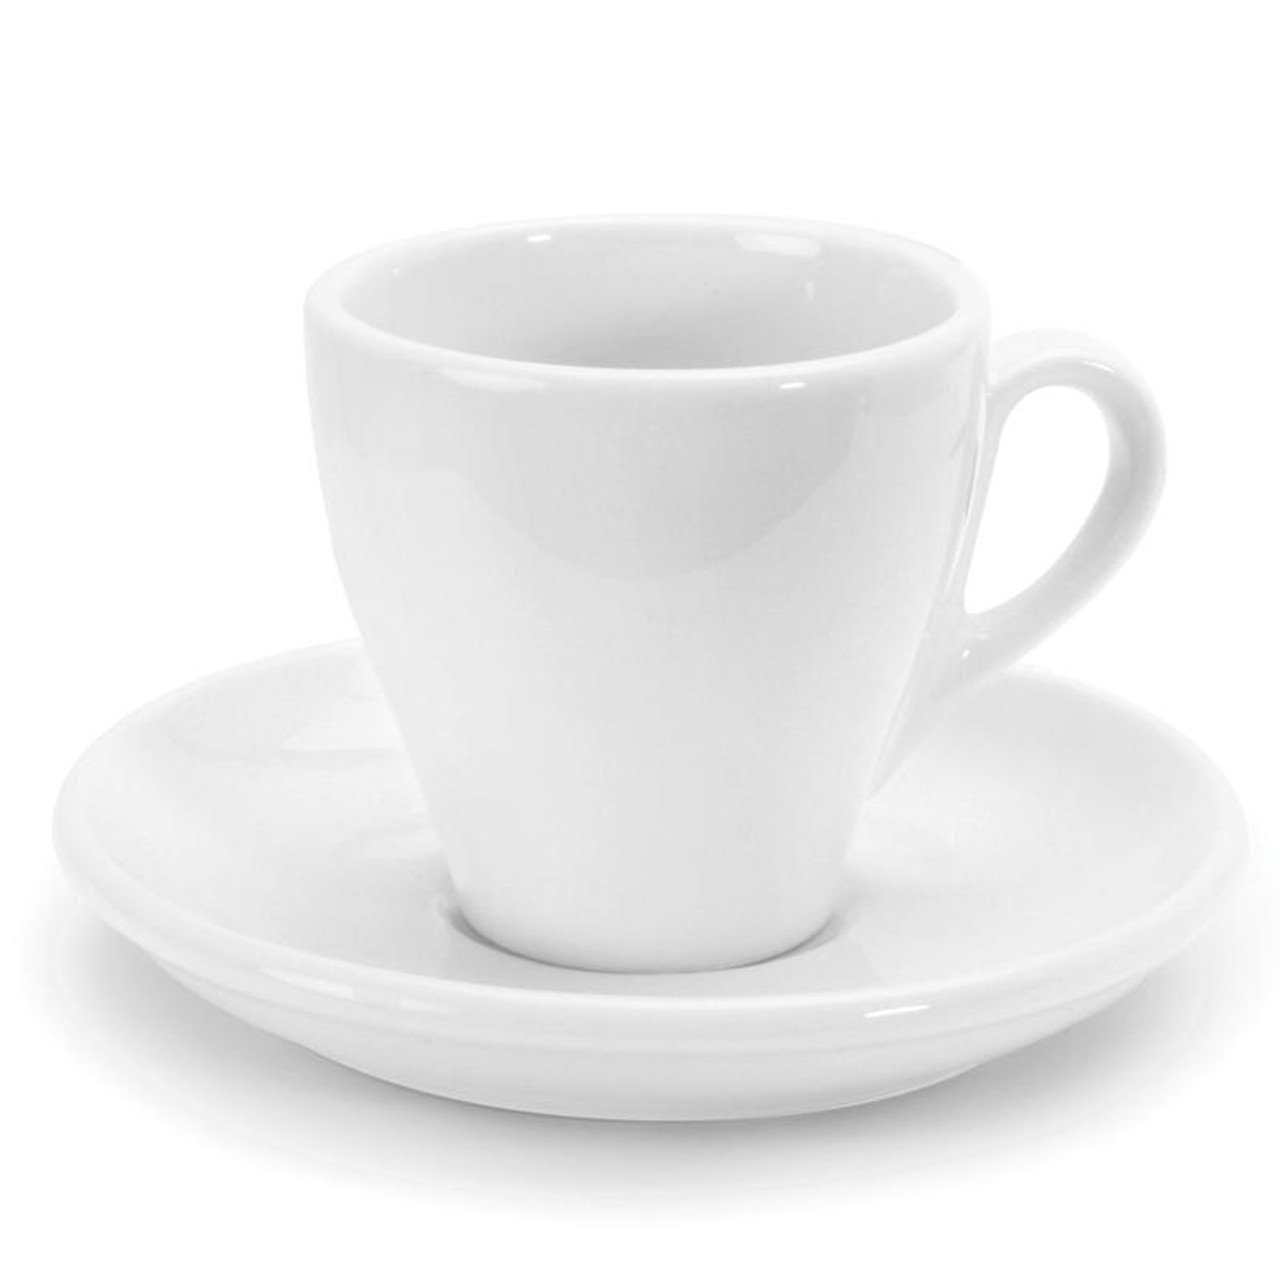 DANESCO CUP AND SAUCER  CAPPUCCINO - 5 oz